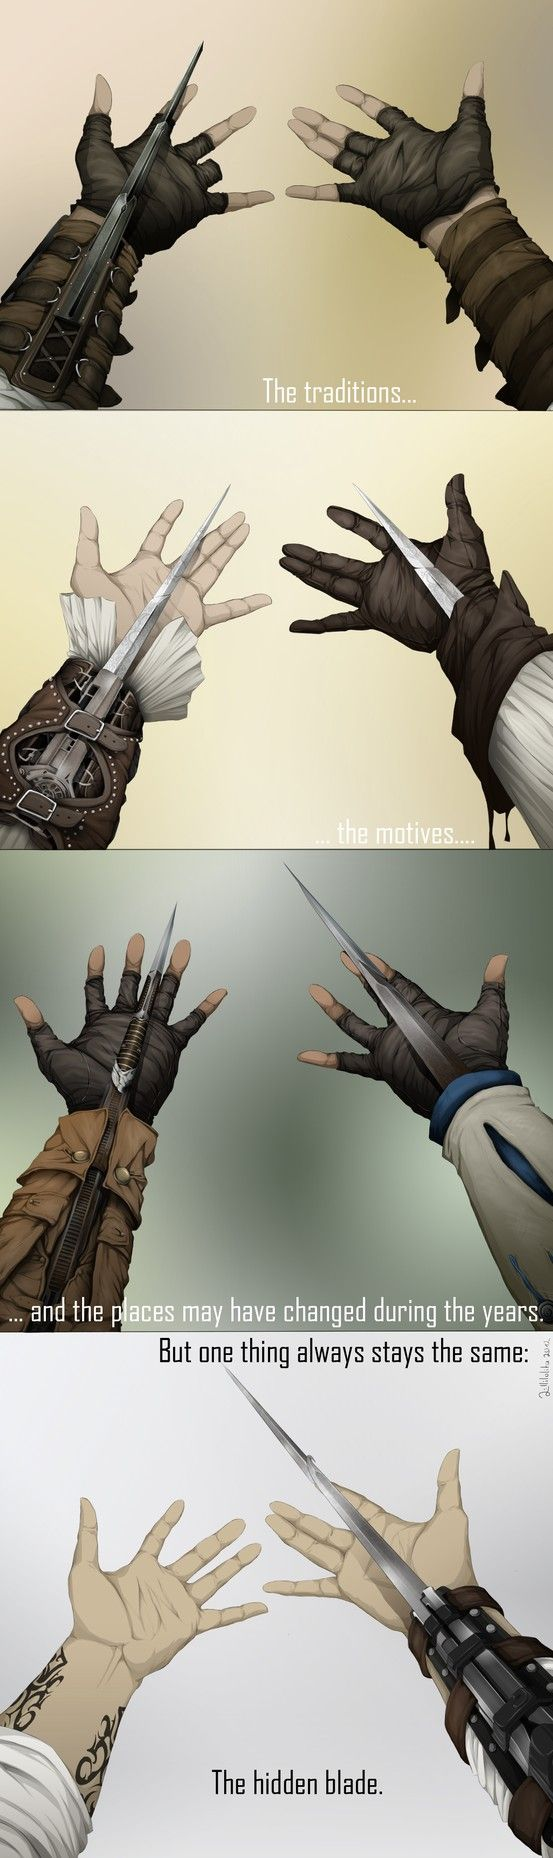 Weaponry                                                                                                                                                                                 More